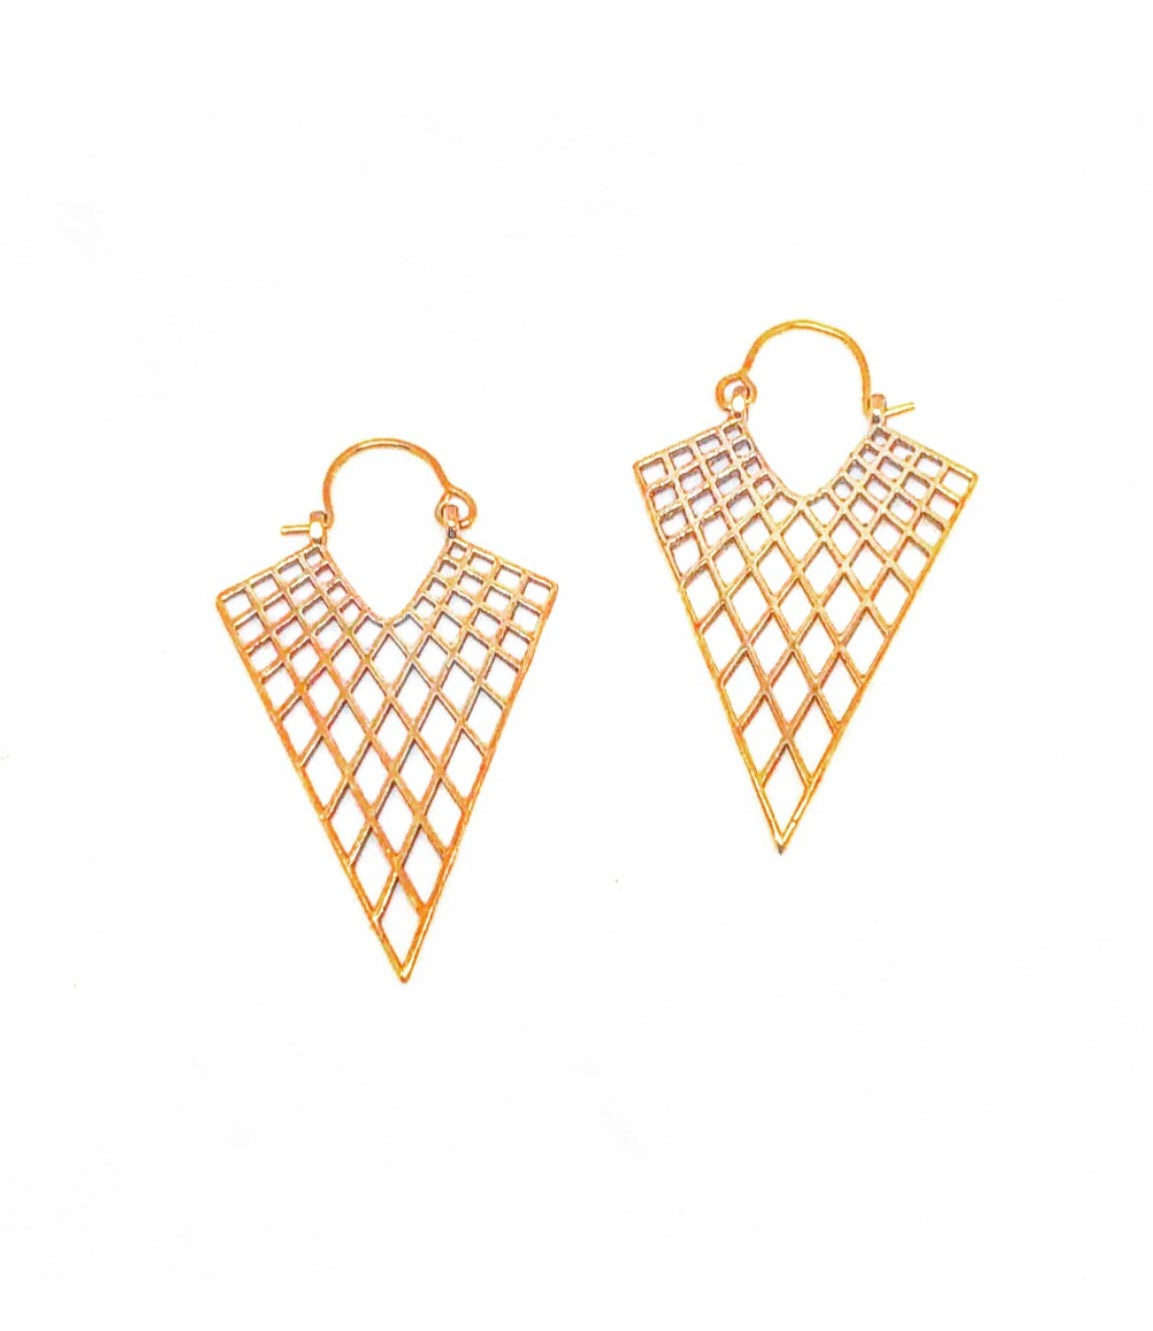 Image of Zahr Point Earrings